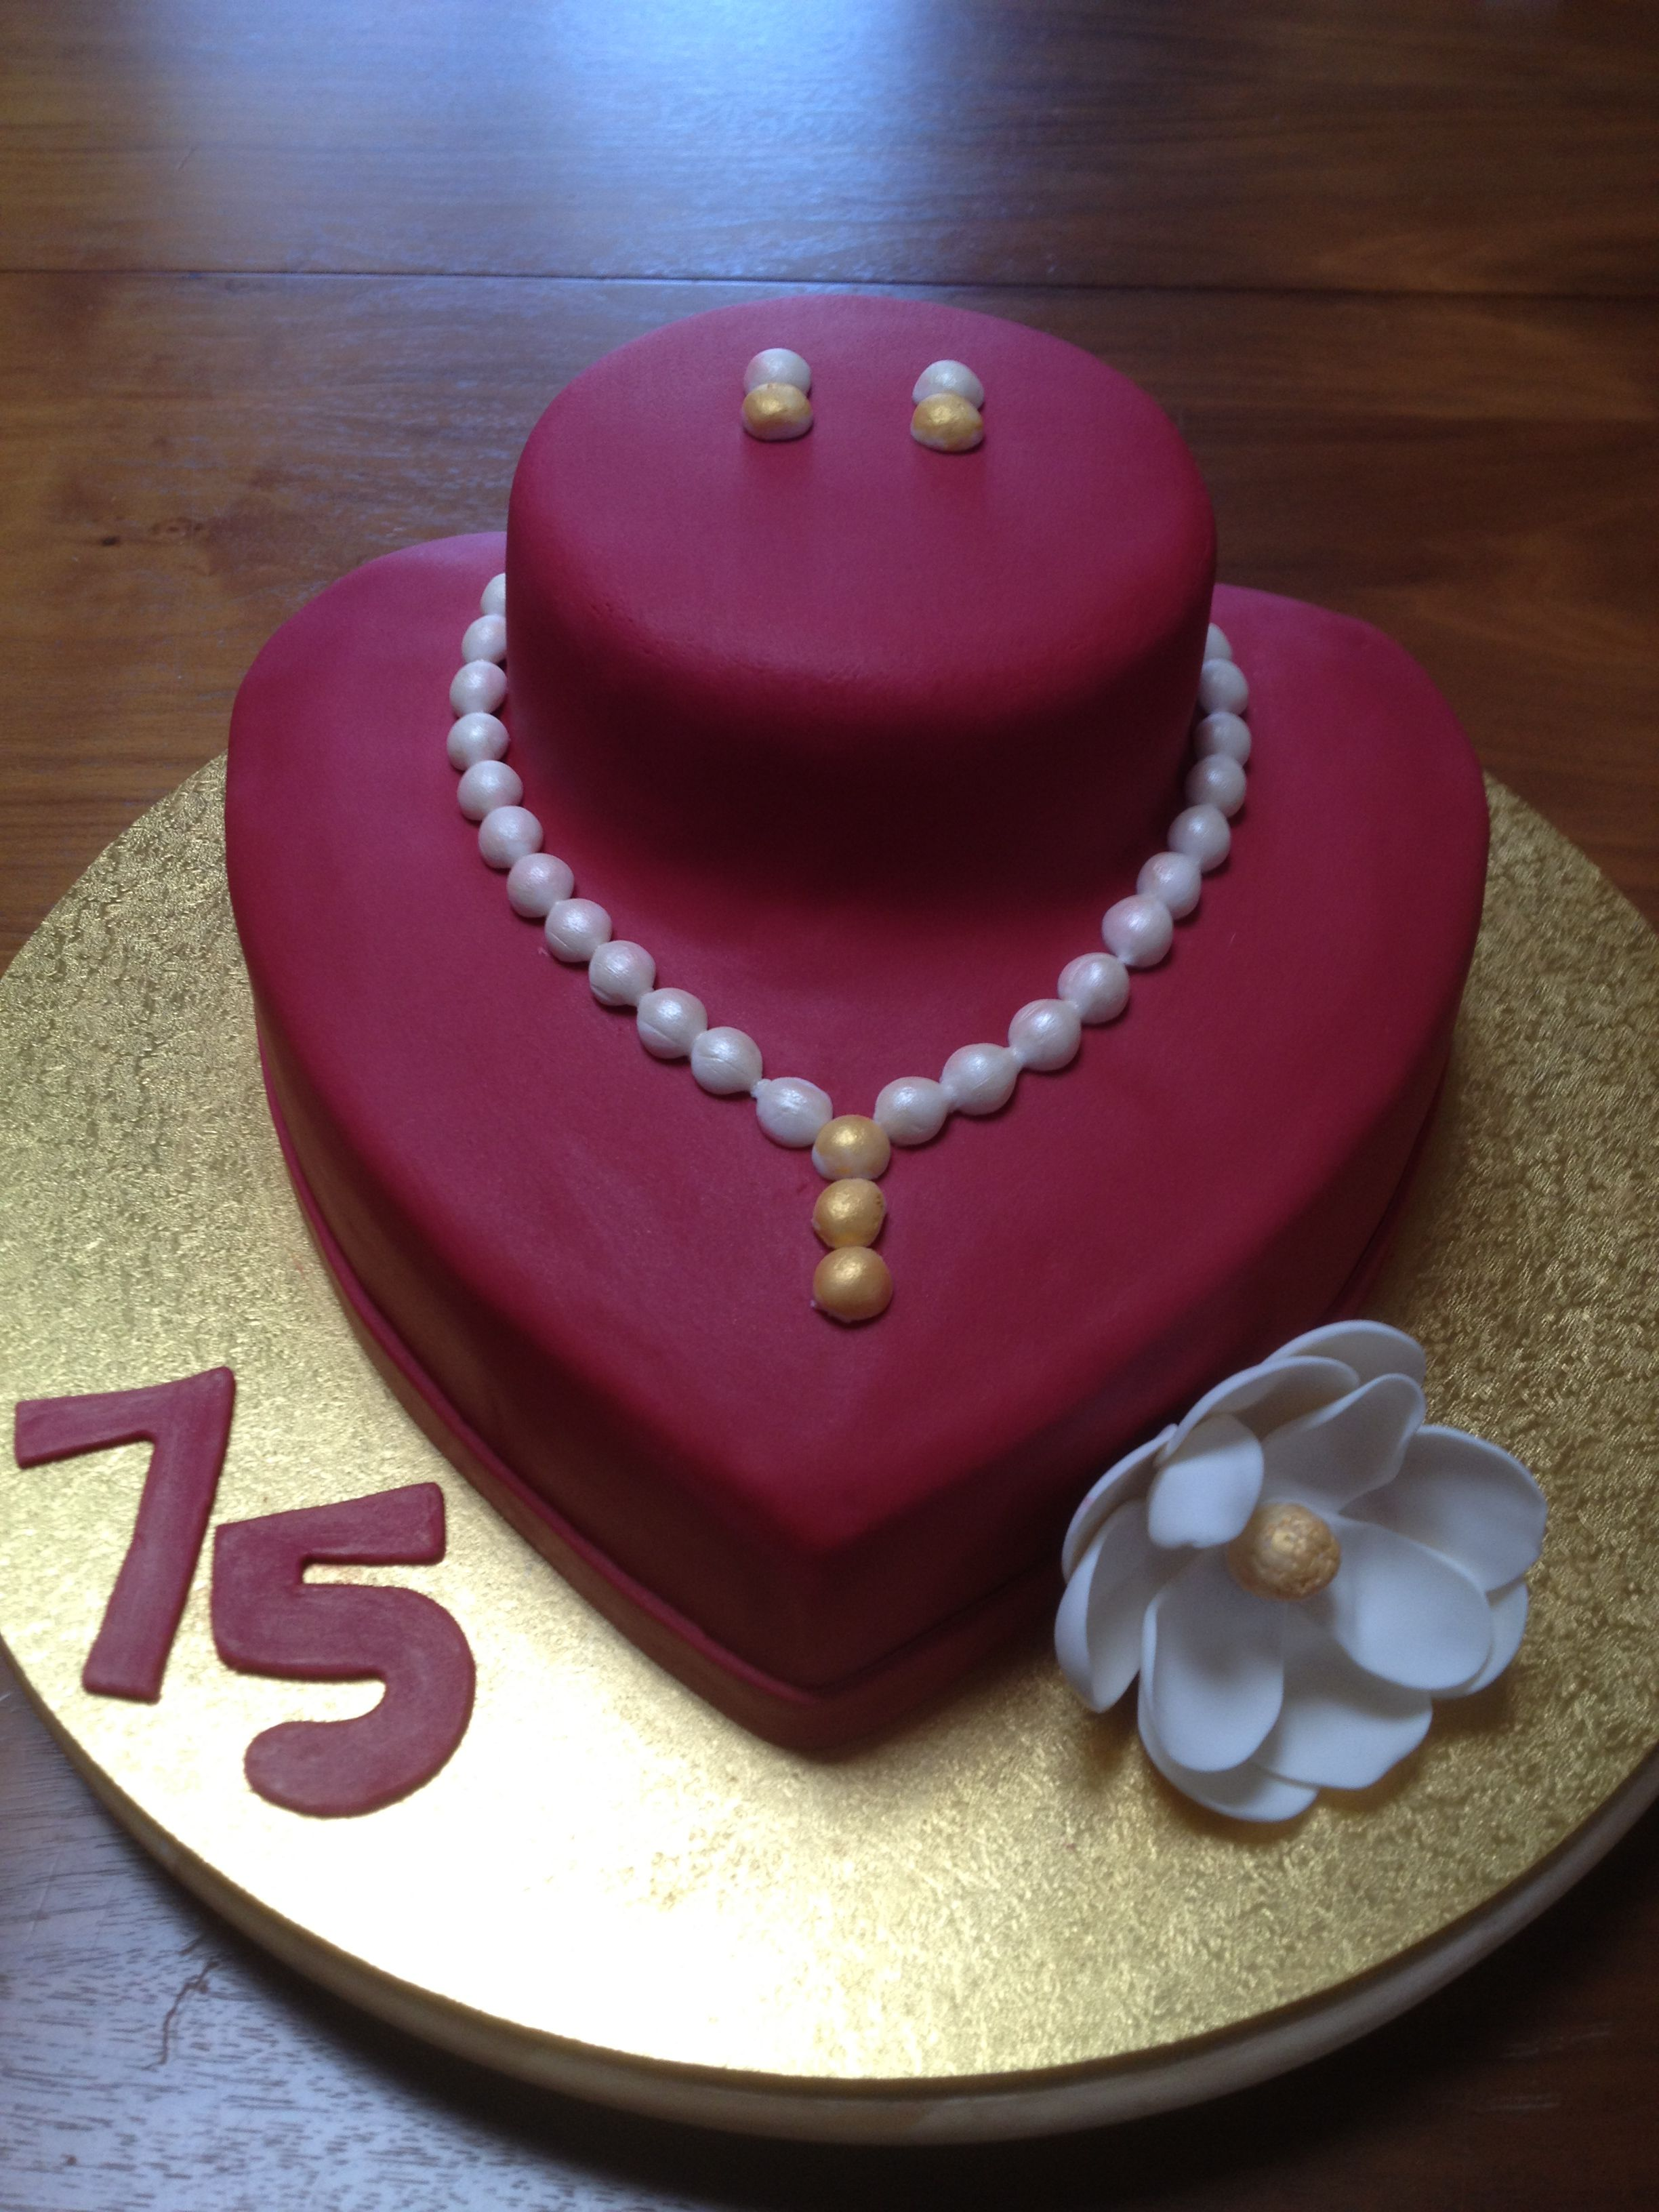 Pearl Necklace amp Earrings Display Cake With images